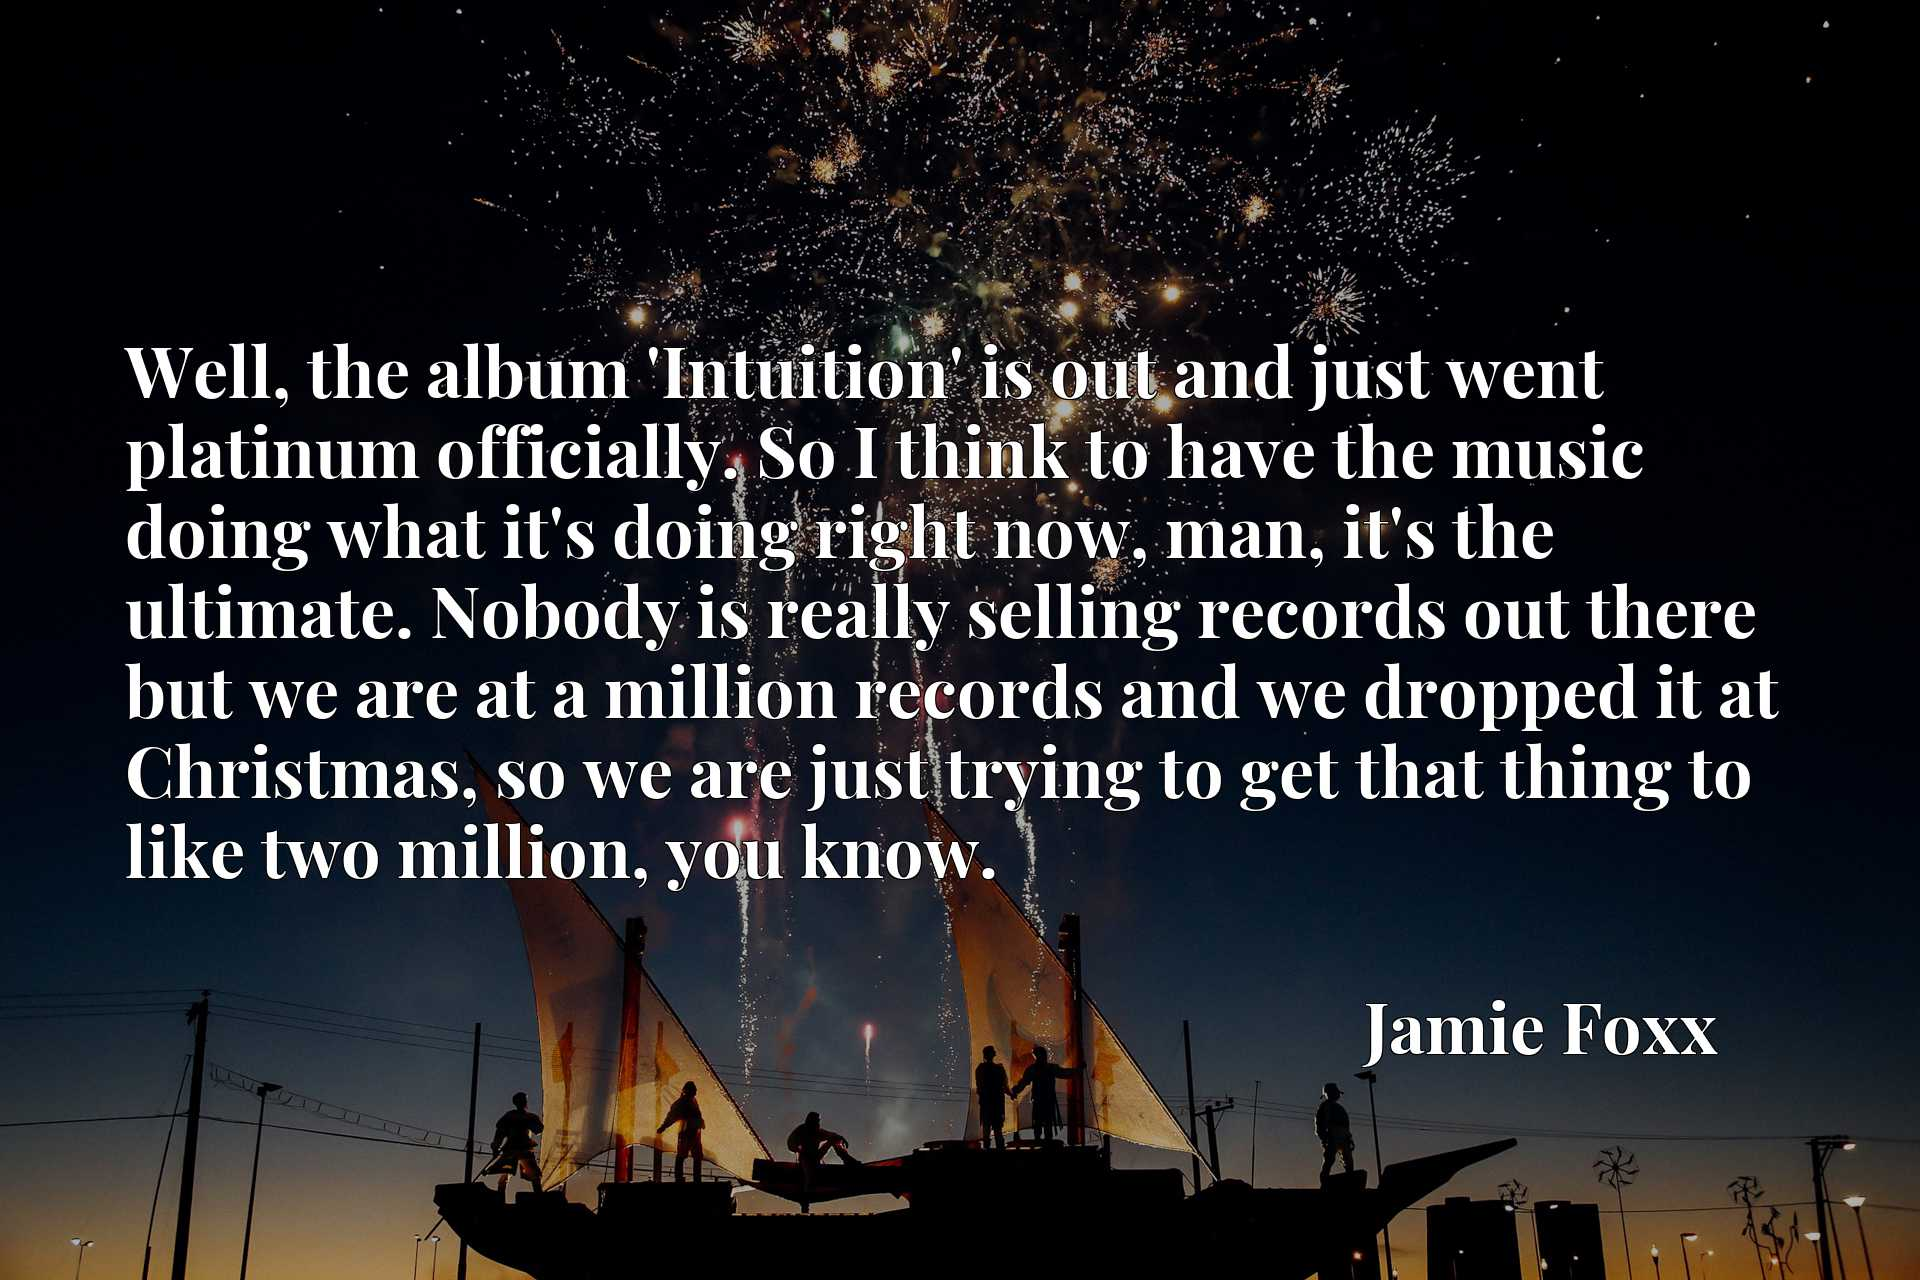 Well, the album 'Intuition' is out and just went platinum officially. So I think to have the music doing what it's doing right now, man, it's the ultimate. Nobody is really selling records out there but we are at a million records and we dropped it at Christmas, so we are just trying to get that thing to like two million, you know.